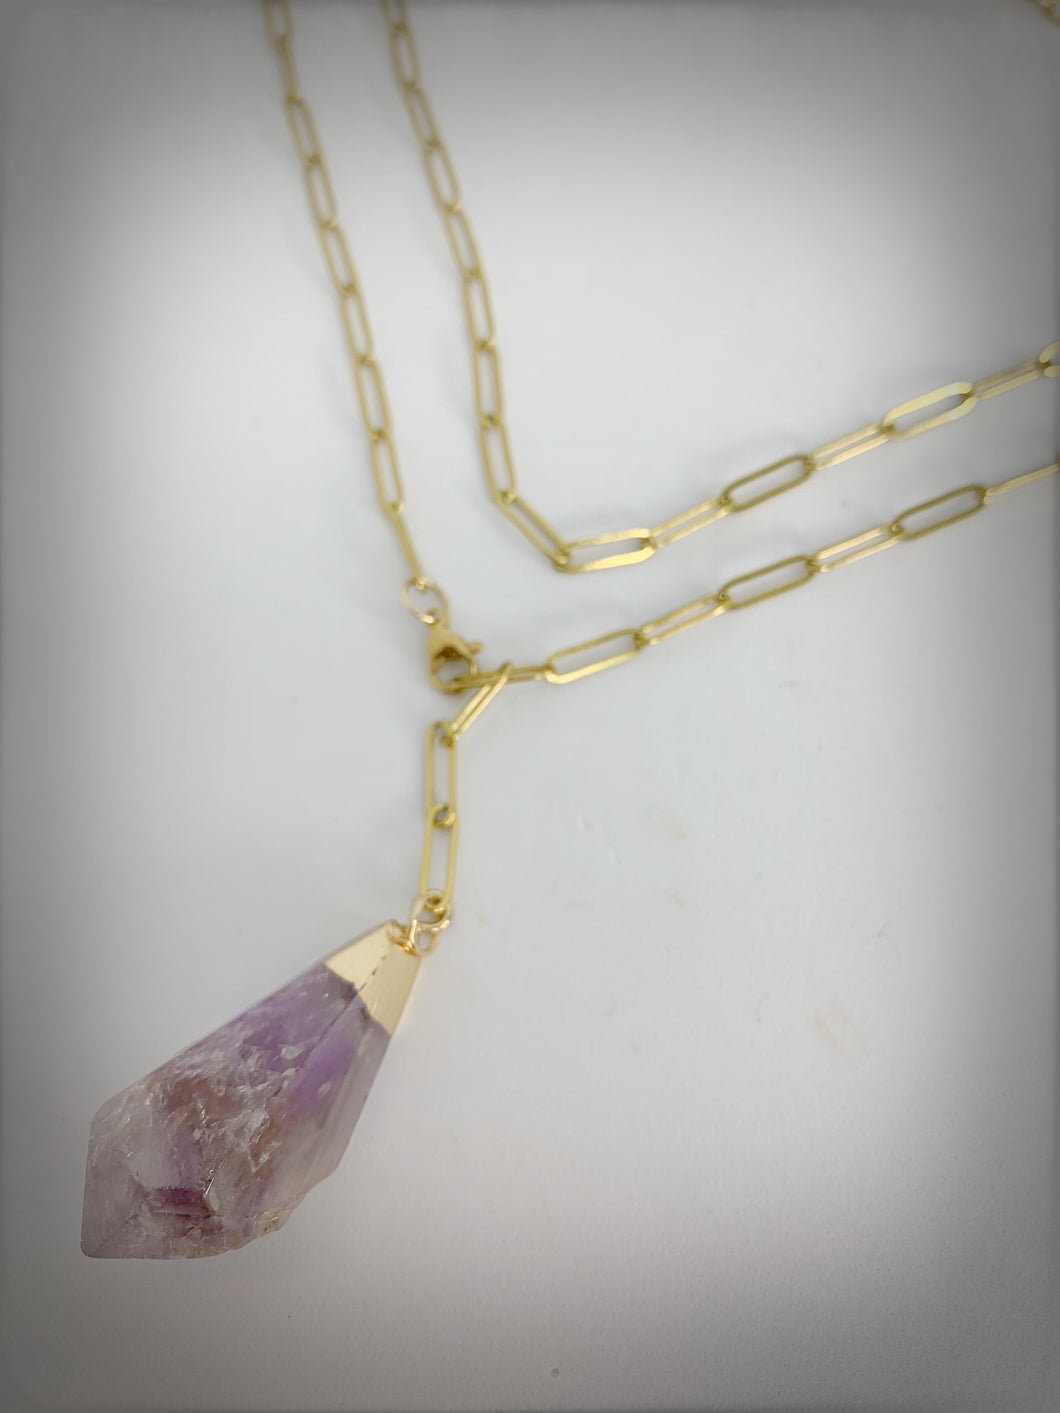 RAW COLLECTION - Amethyst Stone on Gold Link Chain (Adjustable)